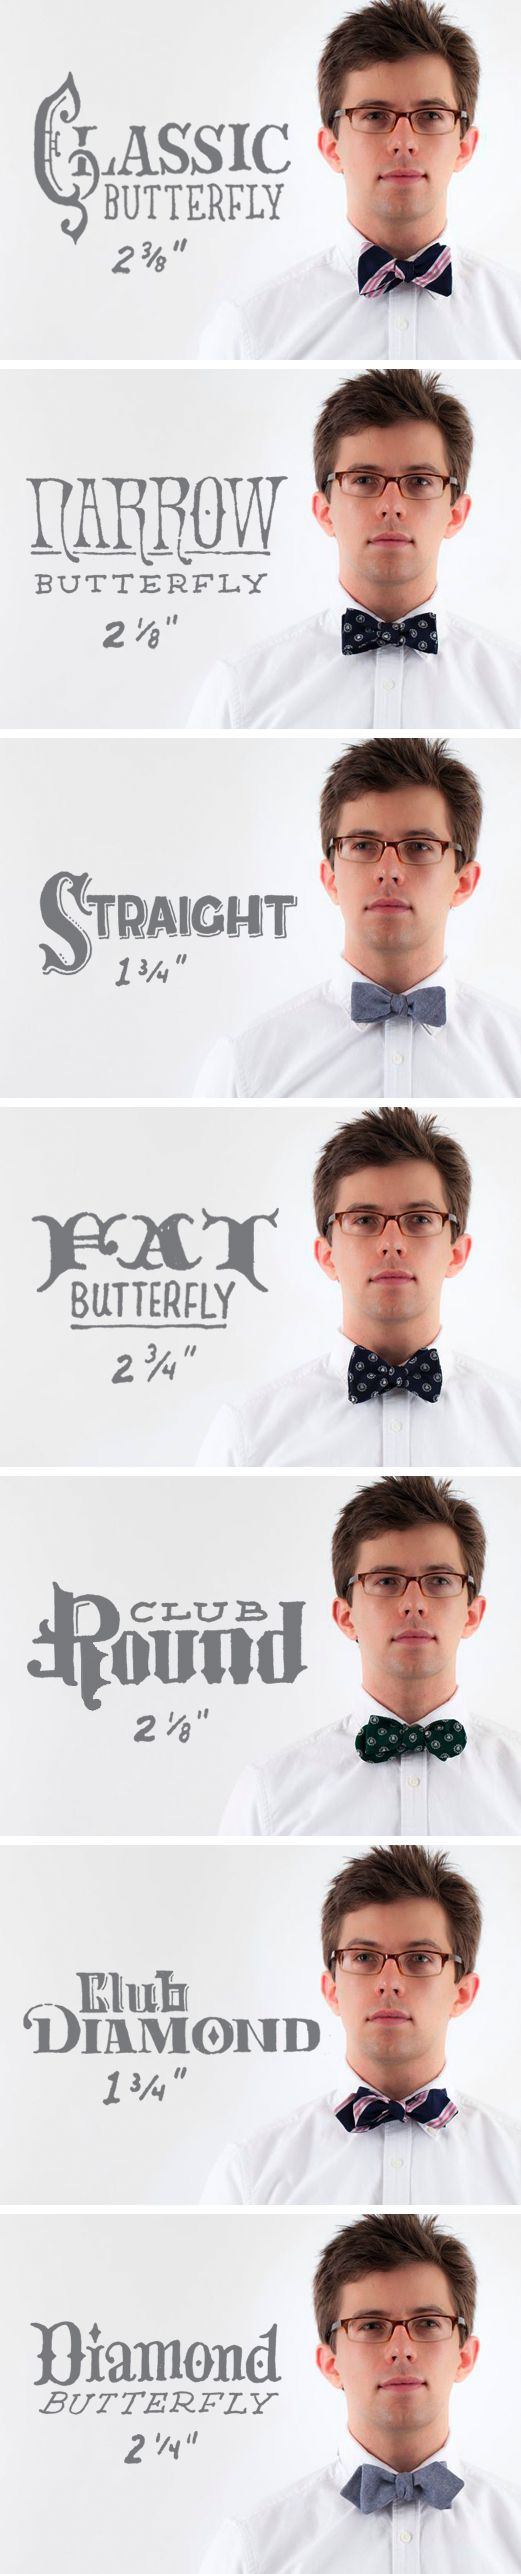 The Bow Tie Effect — Pocket Square Productions